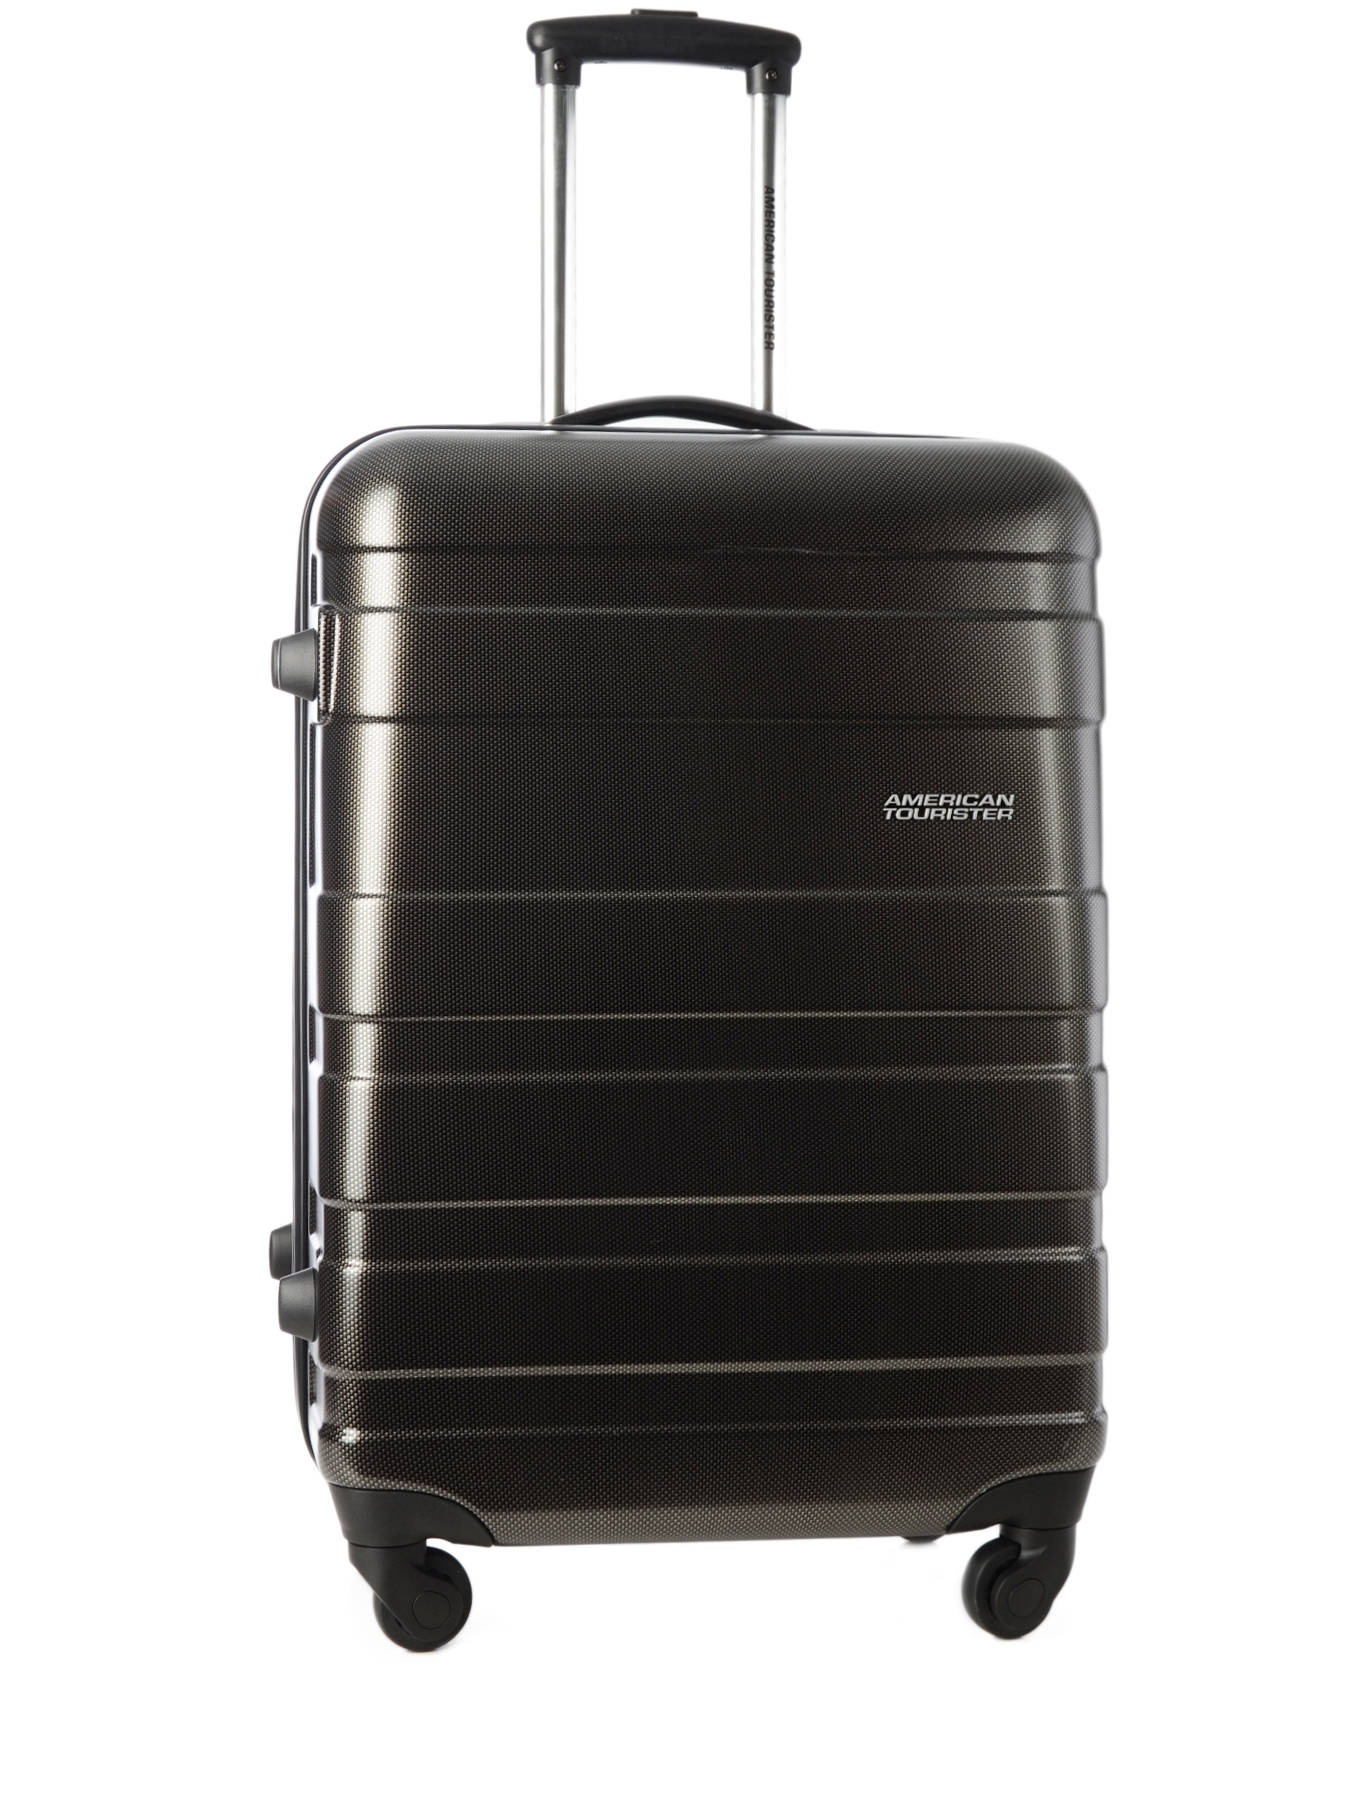 valise rigide american tourister pasadena black gre en. Black Bedroom Furniture Sets. Home Design Ideas